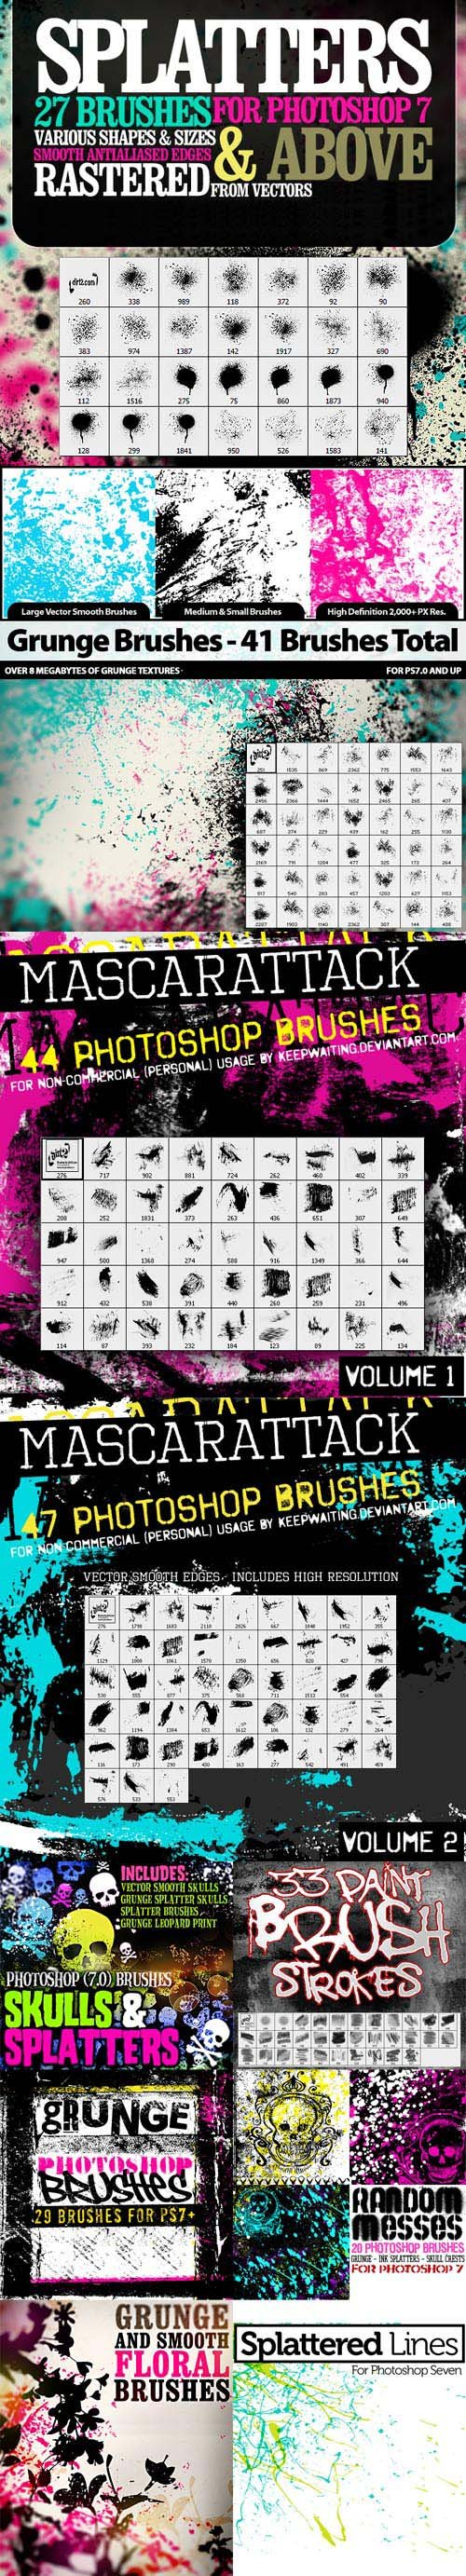 300+ Spraypaint, Splatter, Grunge, Floral & Skull Photoshop Brushes